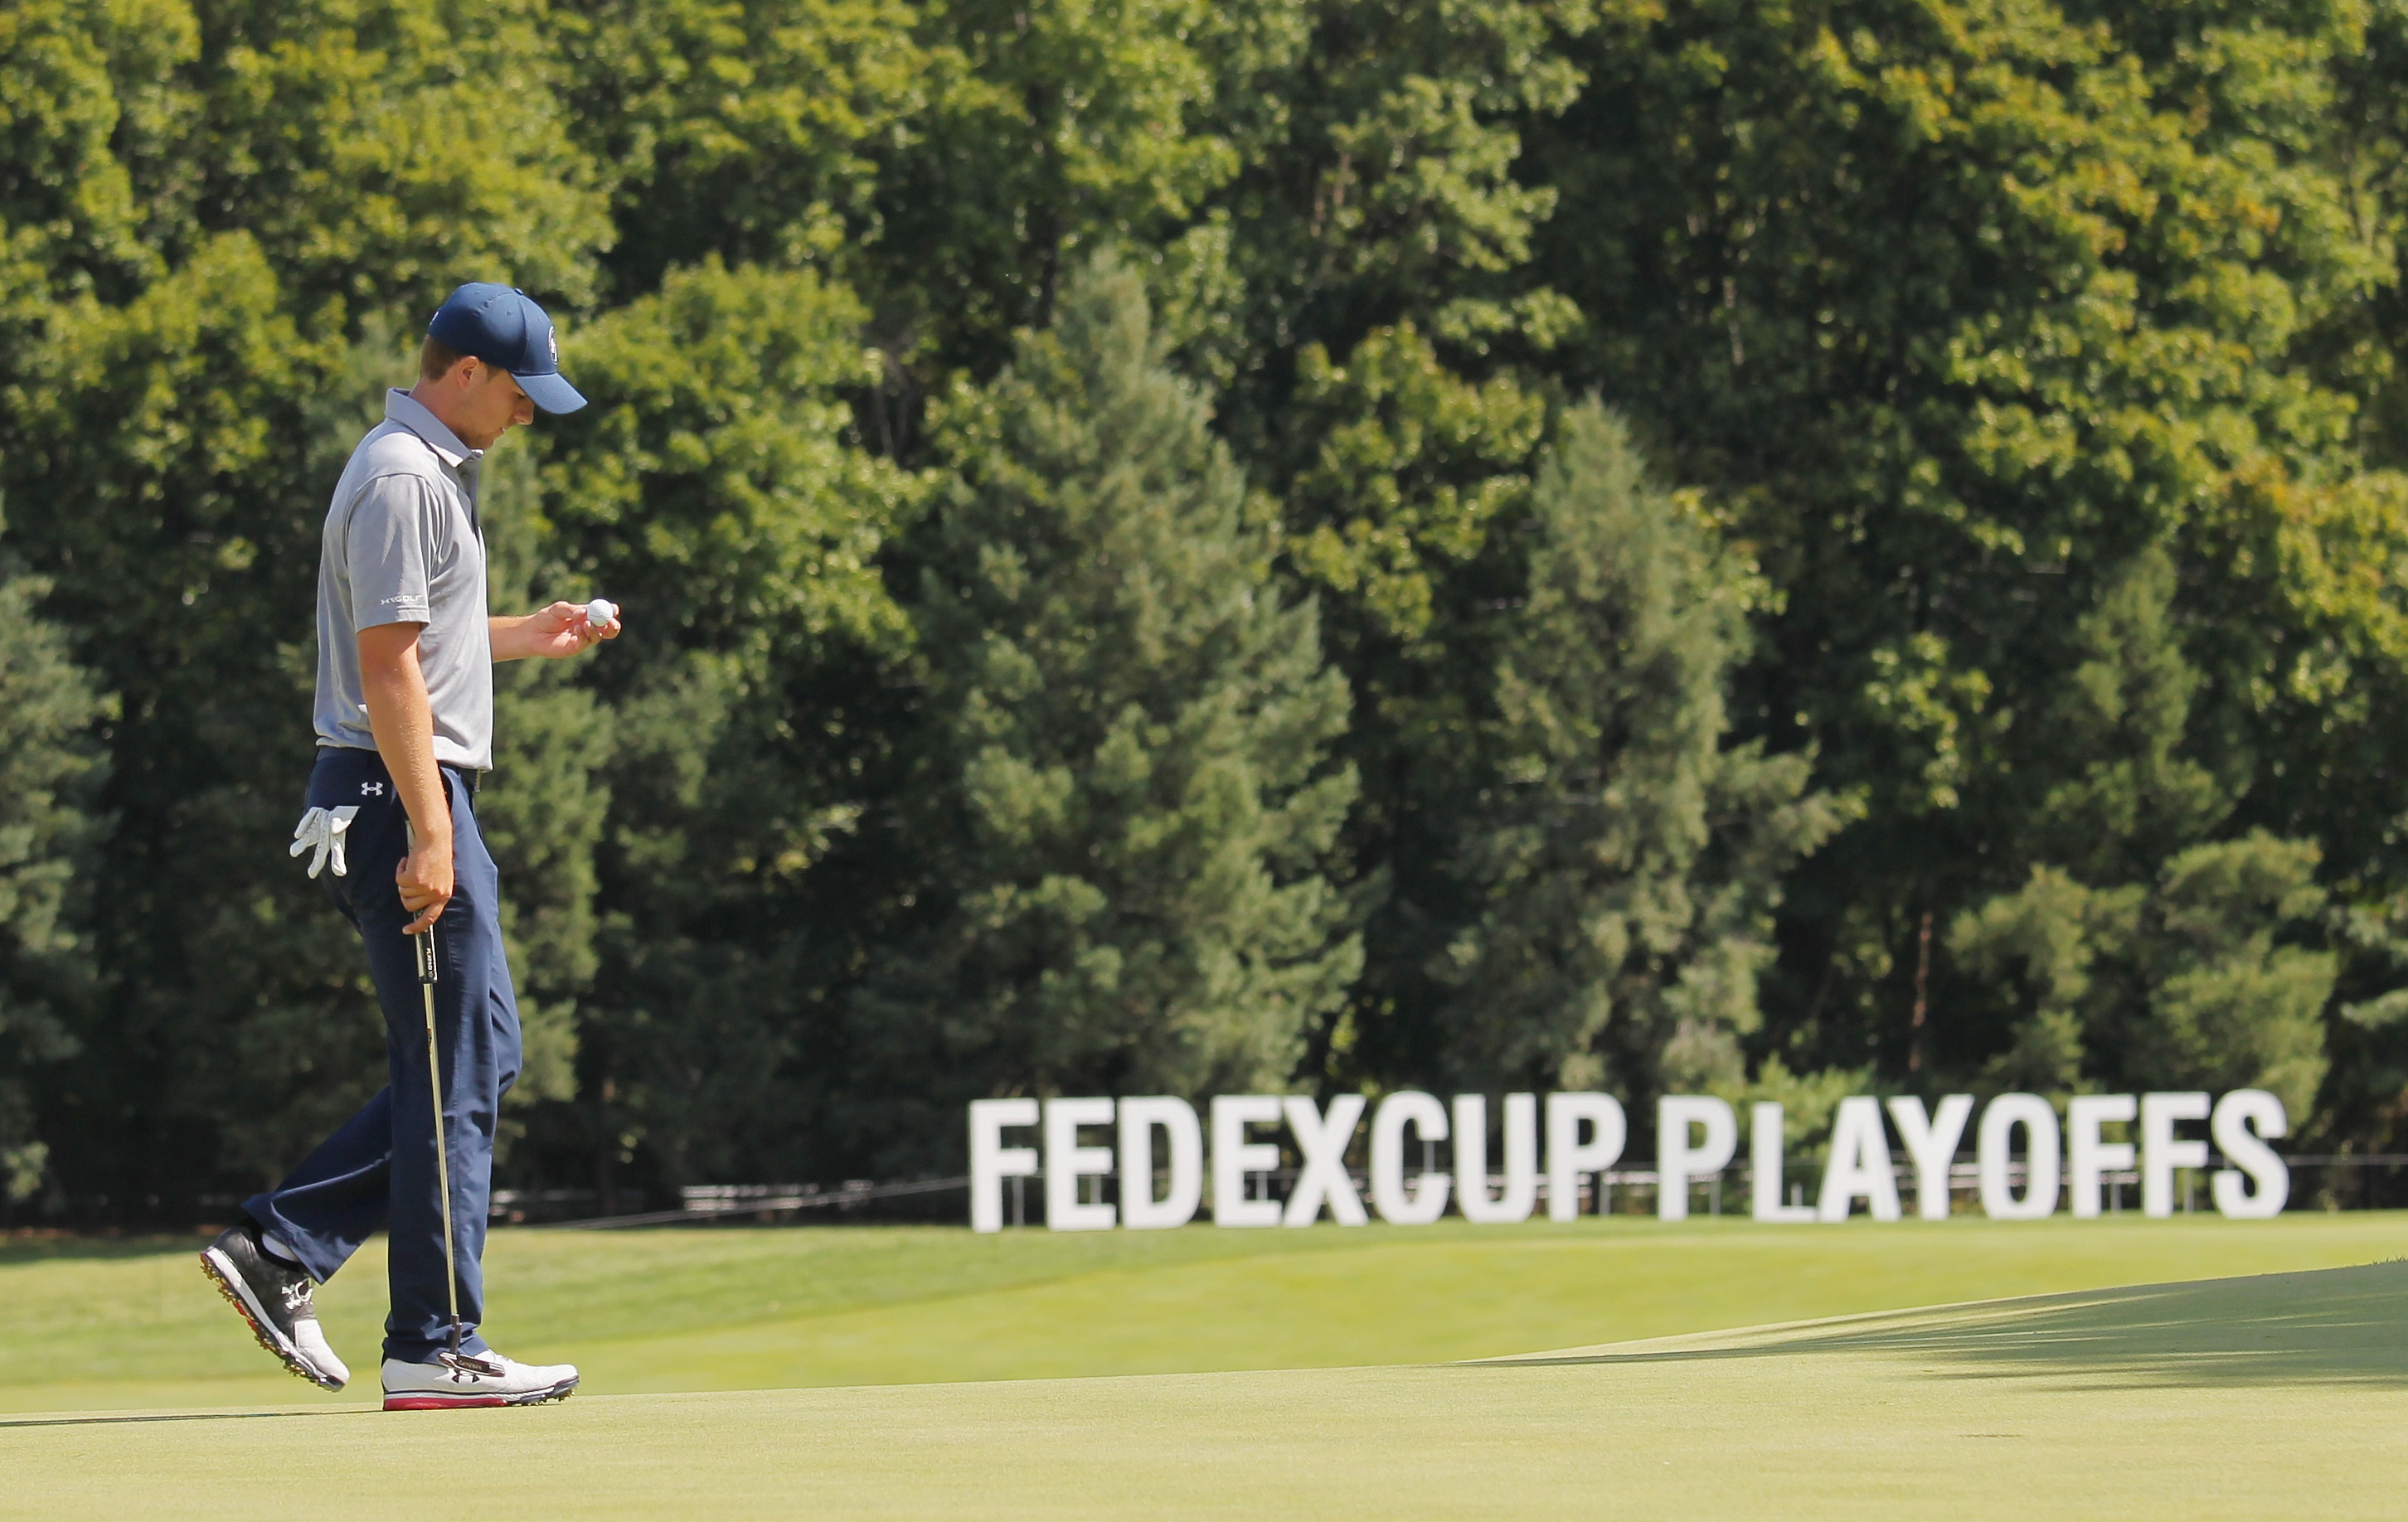 FedEx Cup 2015: Standings, rules and results from the PGA Tour playoffs